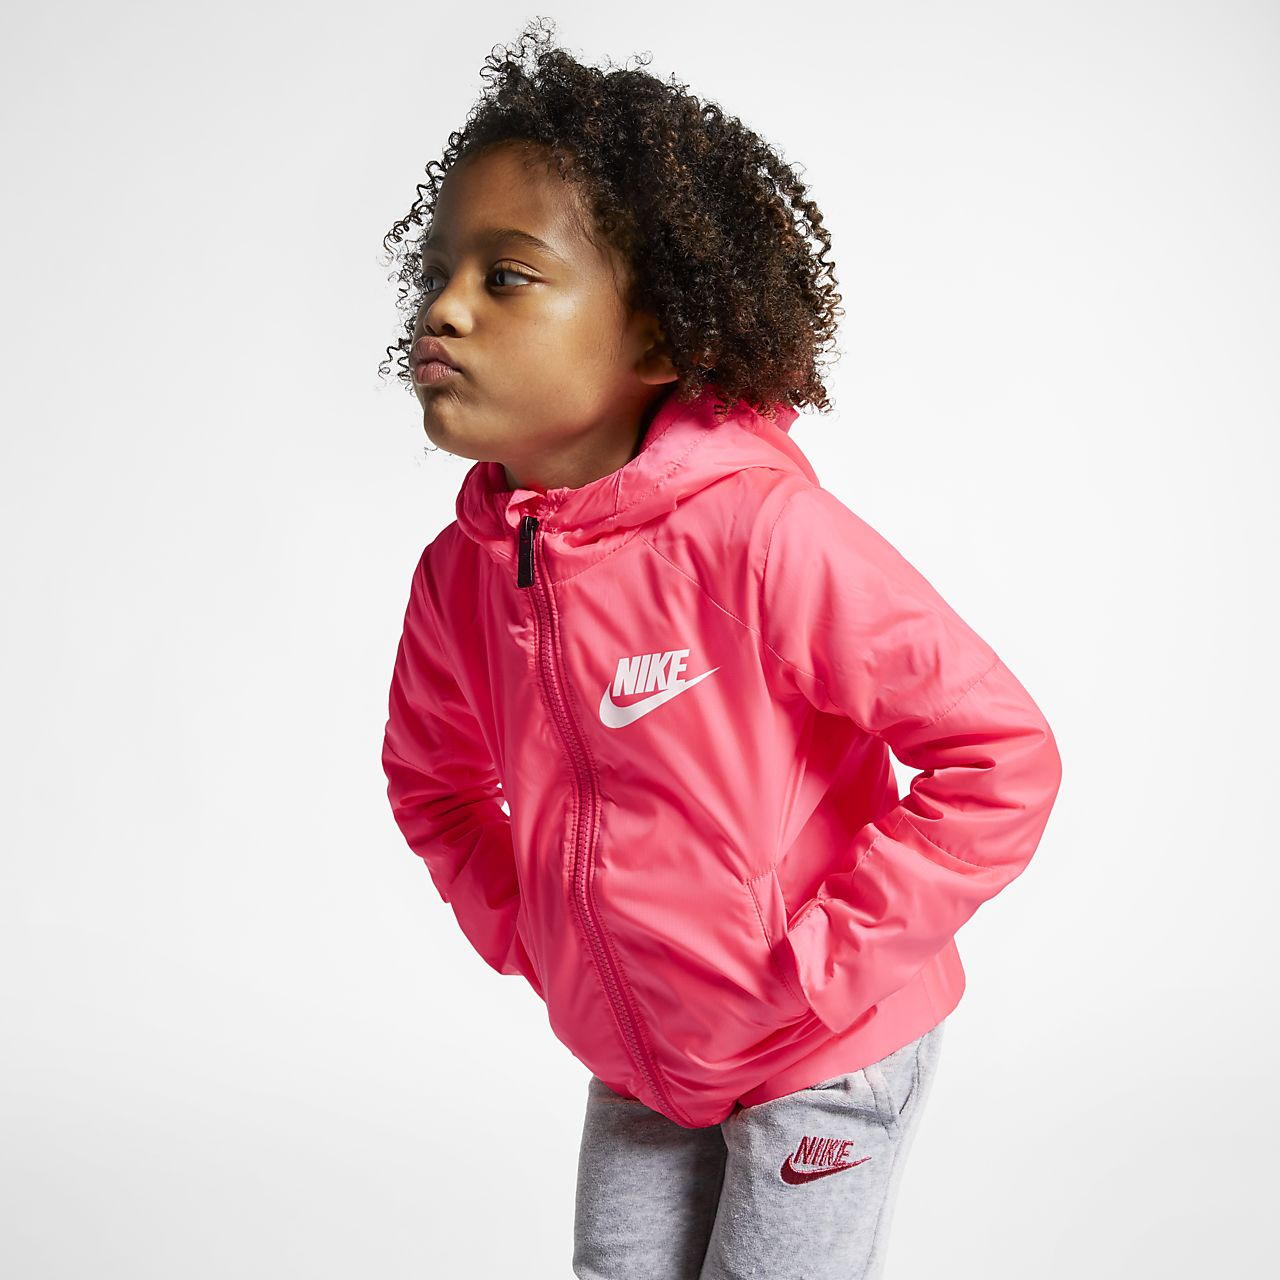 Be Jacket For Nike Youth Child Xn4fqwo Sportswear K1JF3Tcl